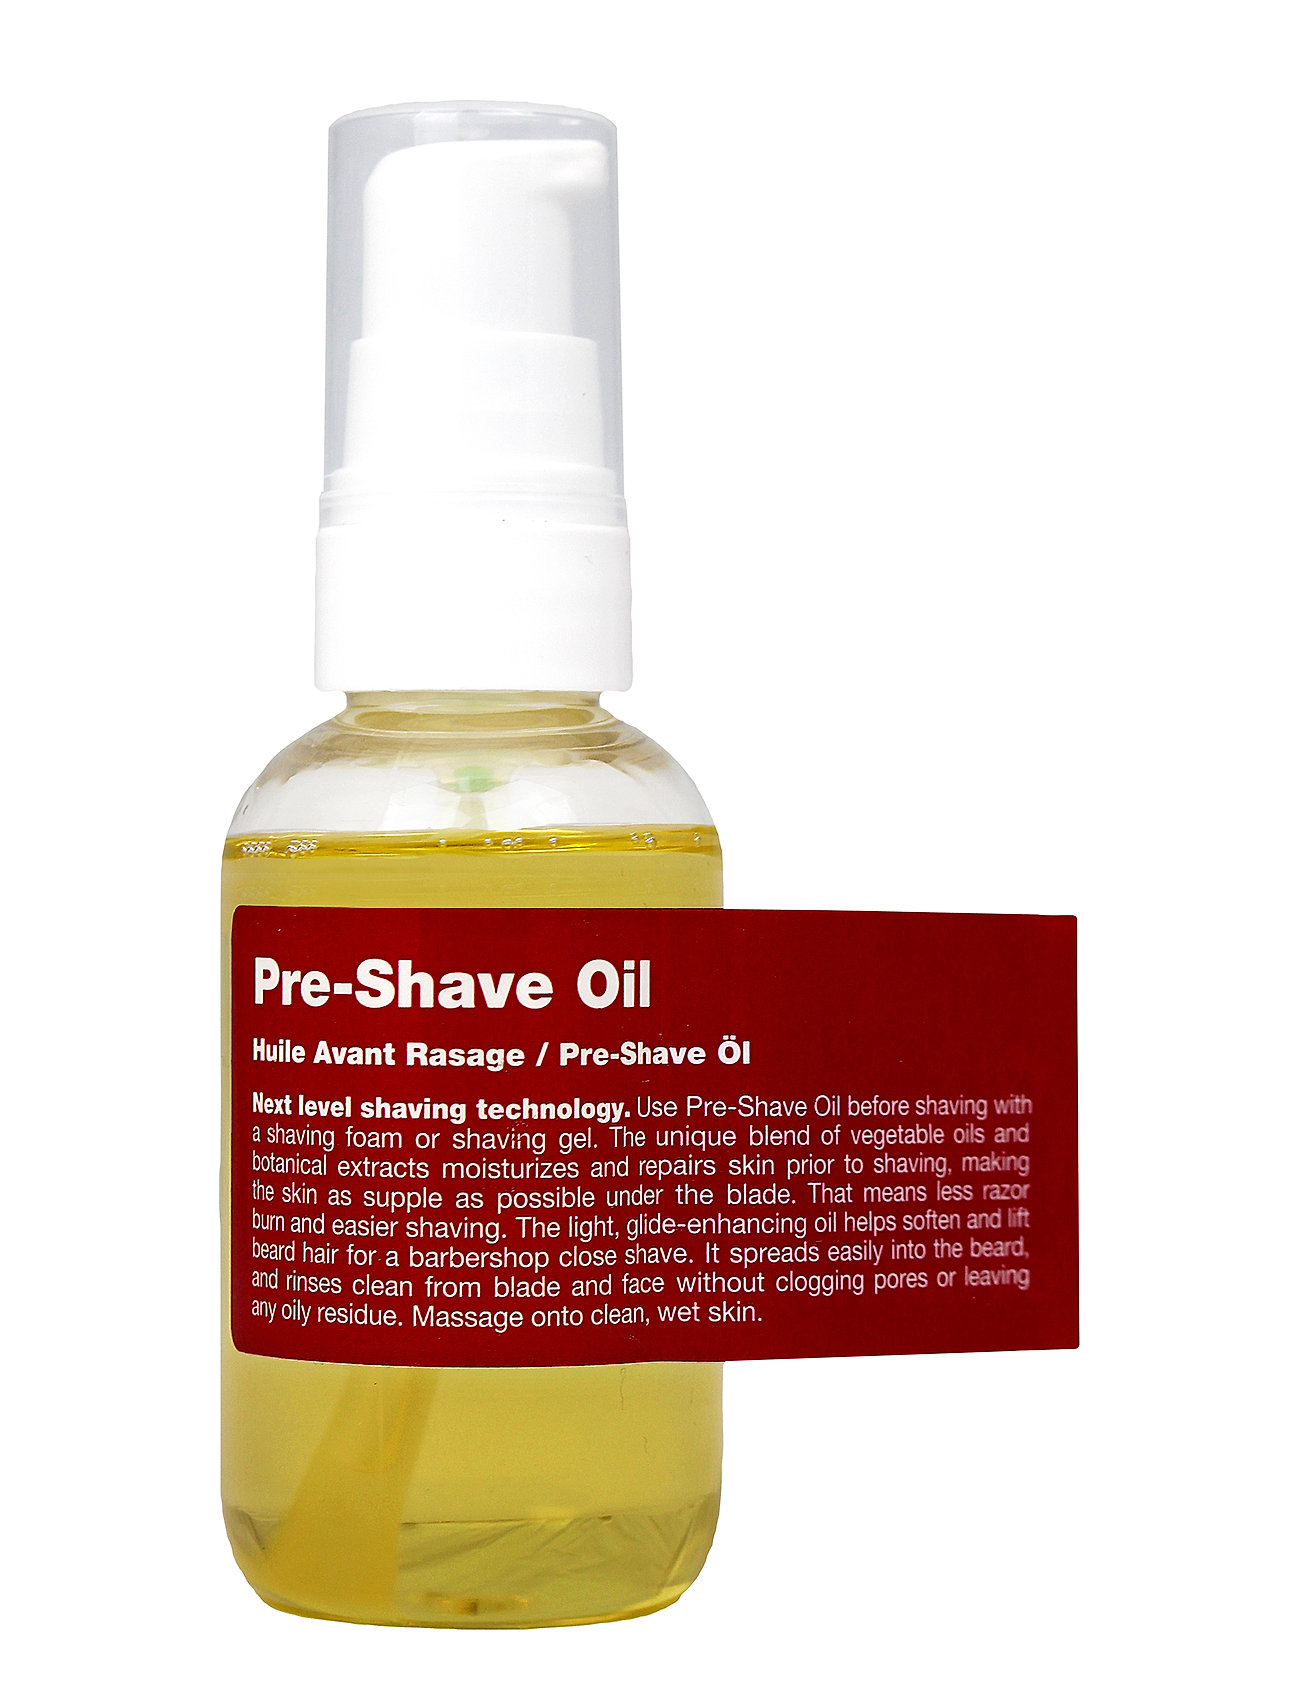 Image of Pre-Shave Oil Beauty MEN Shaving Products Beard Oil Nude Recipe For Men (3412357285)